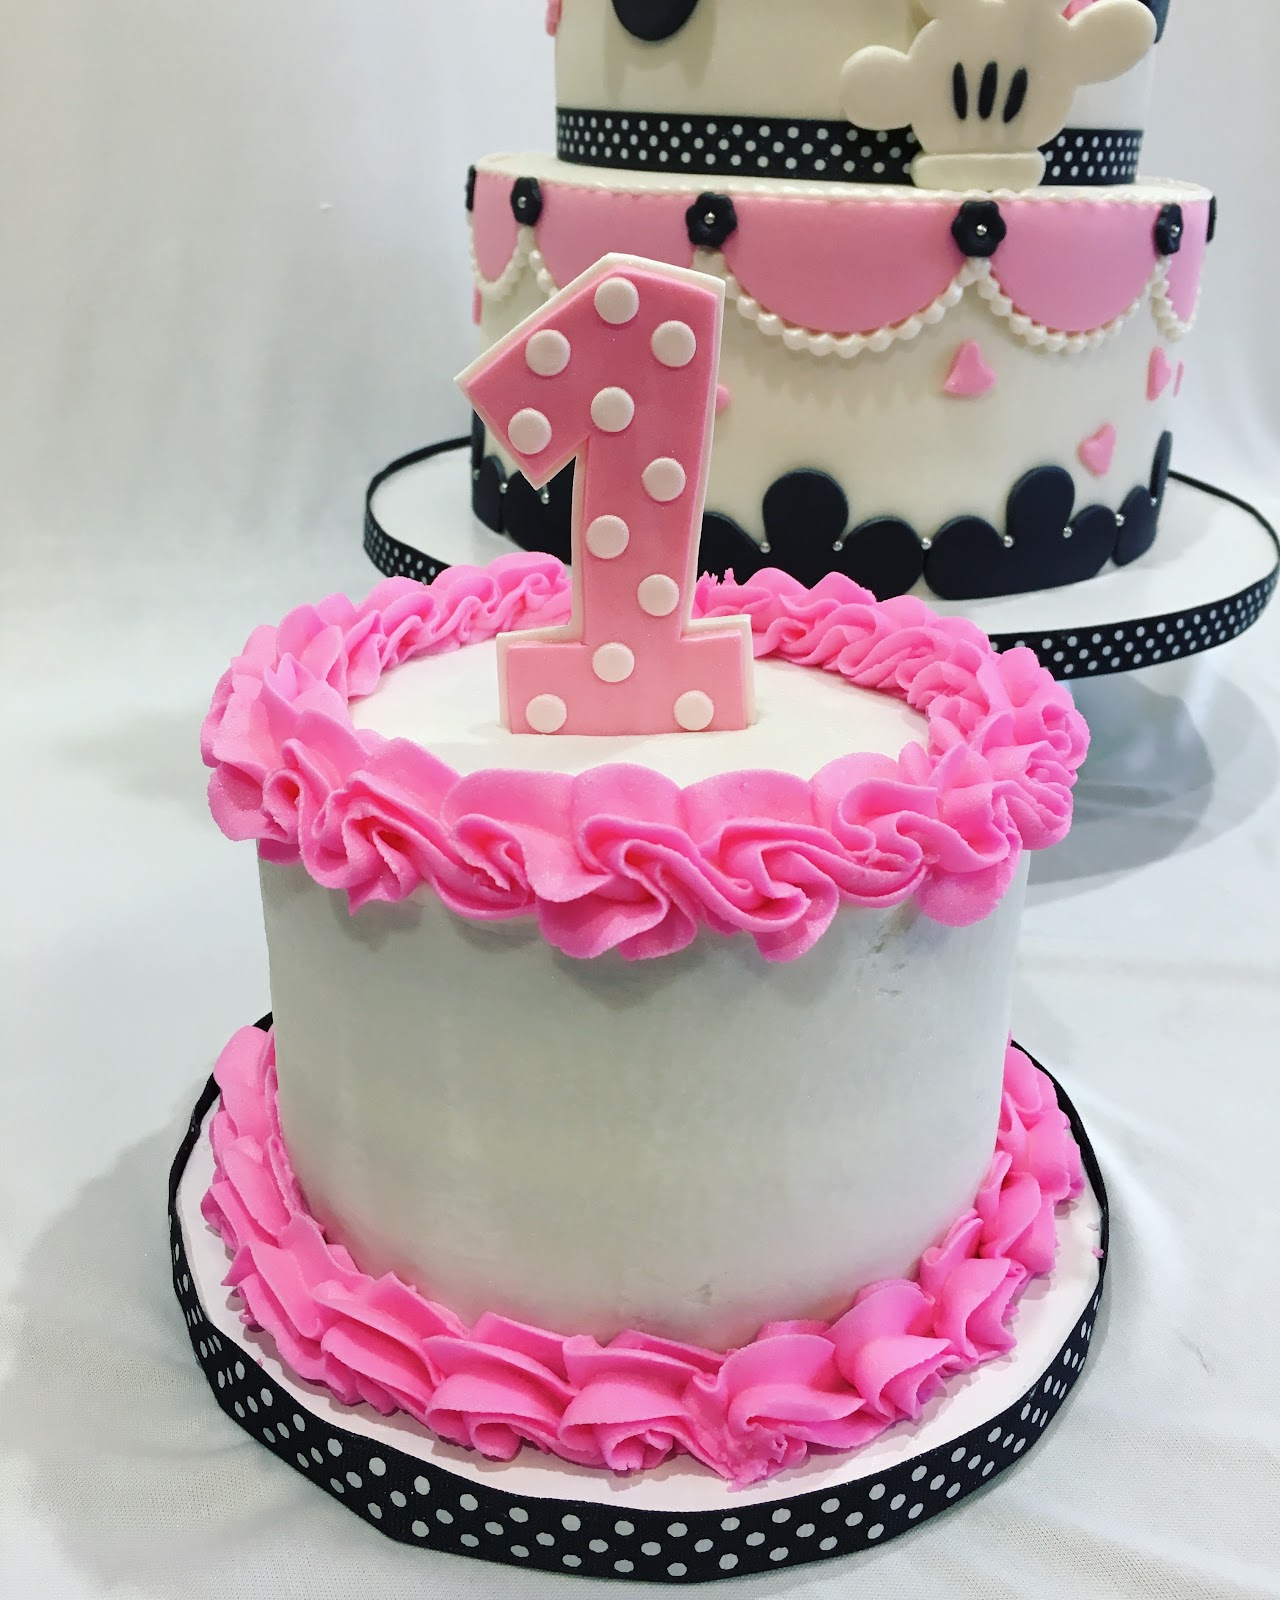 MyMoniCakes: Minnie Mouse cake with Minnie sculpture